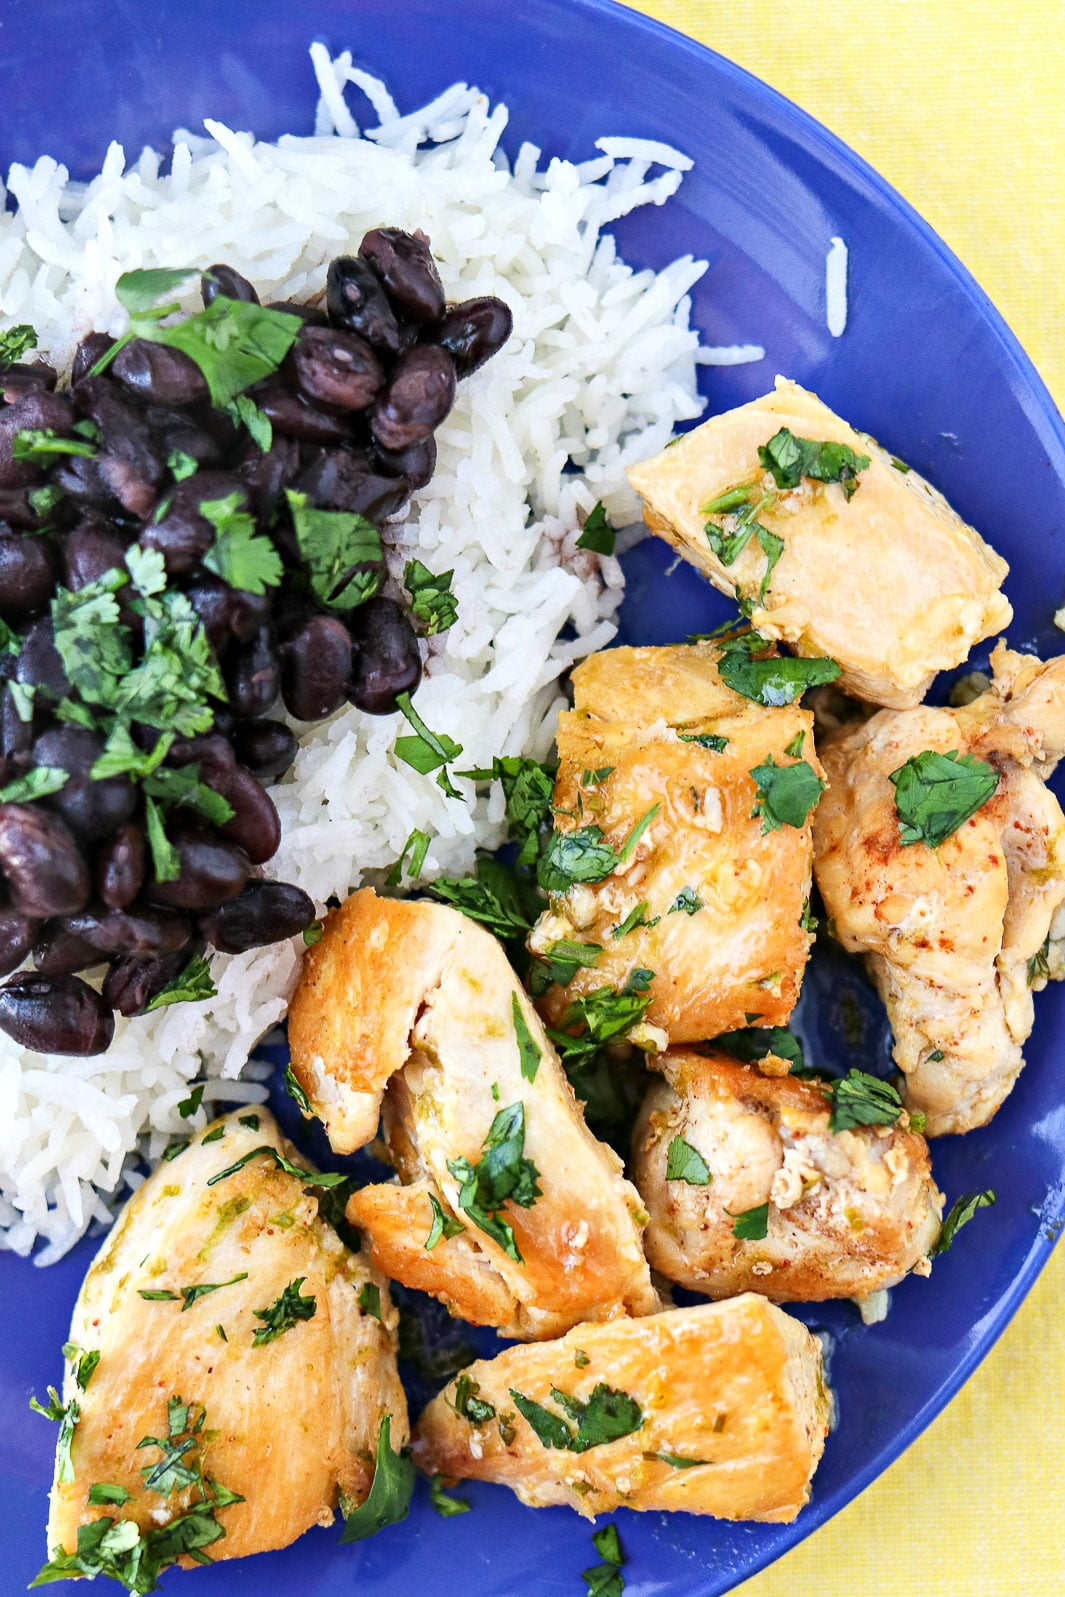 Cilantro Lime Chicken Bites served with black beans and rice